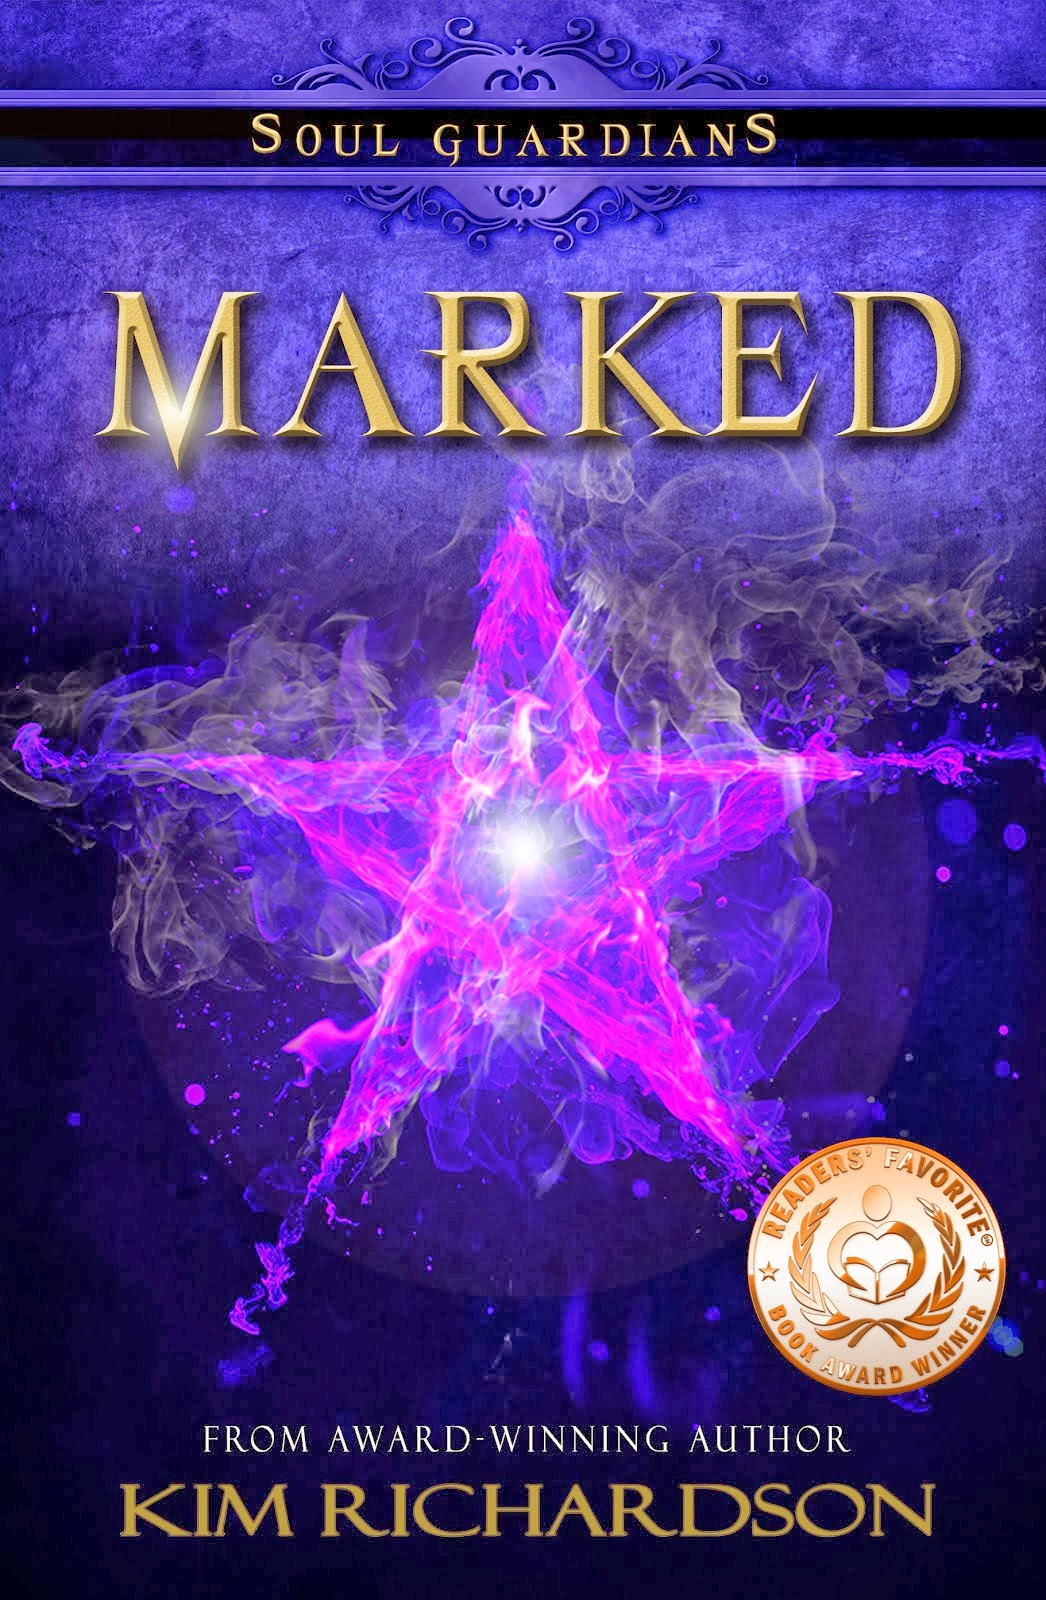 Marked, Soul Guardians Book 1